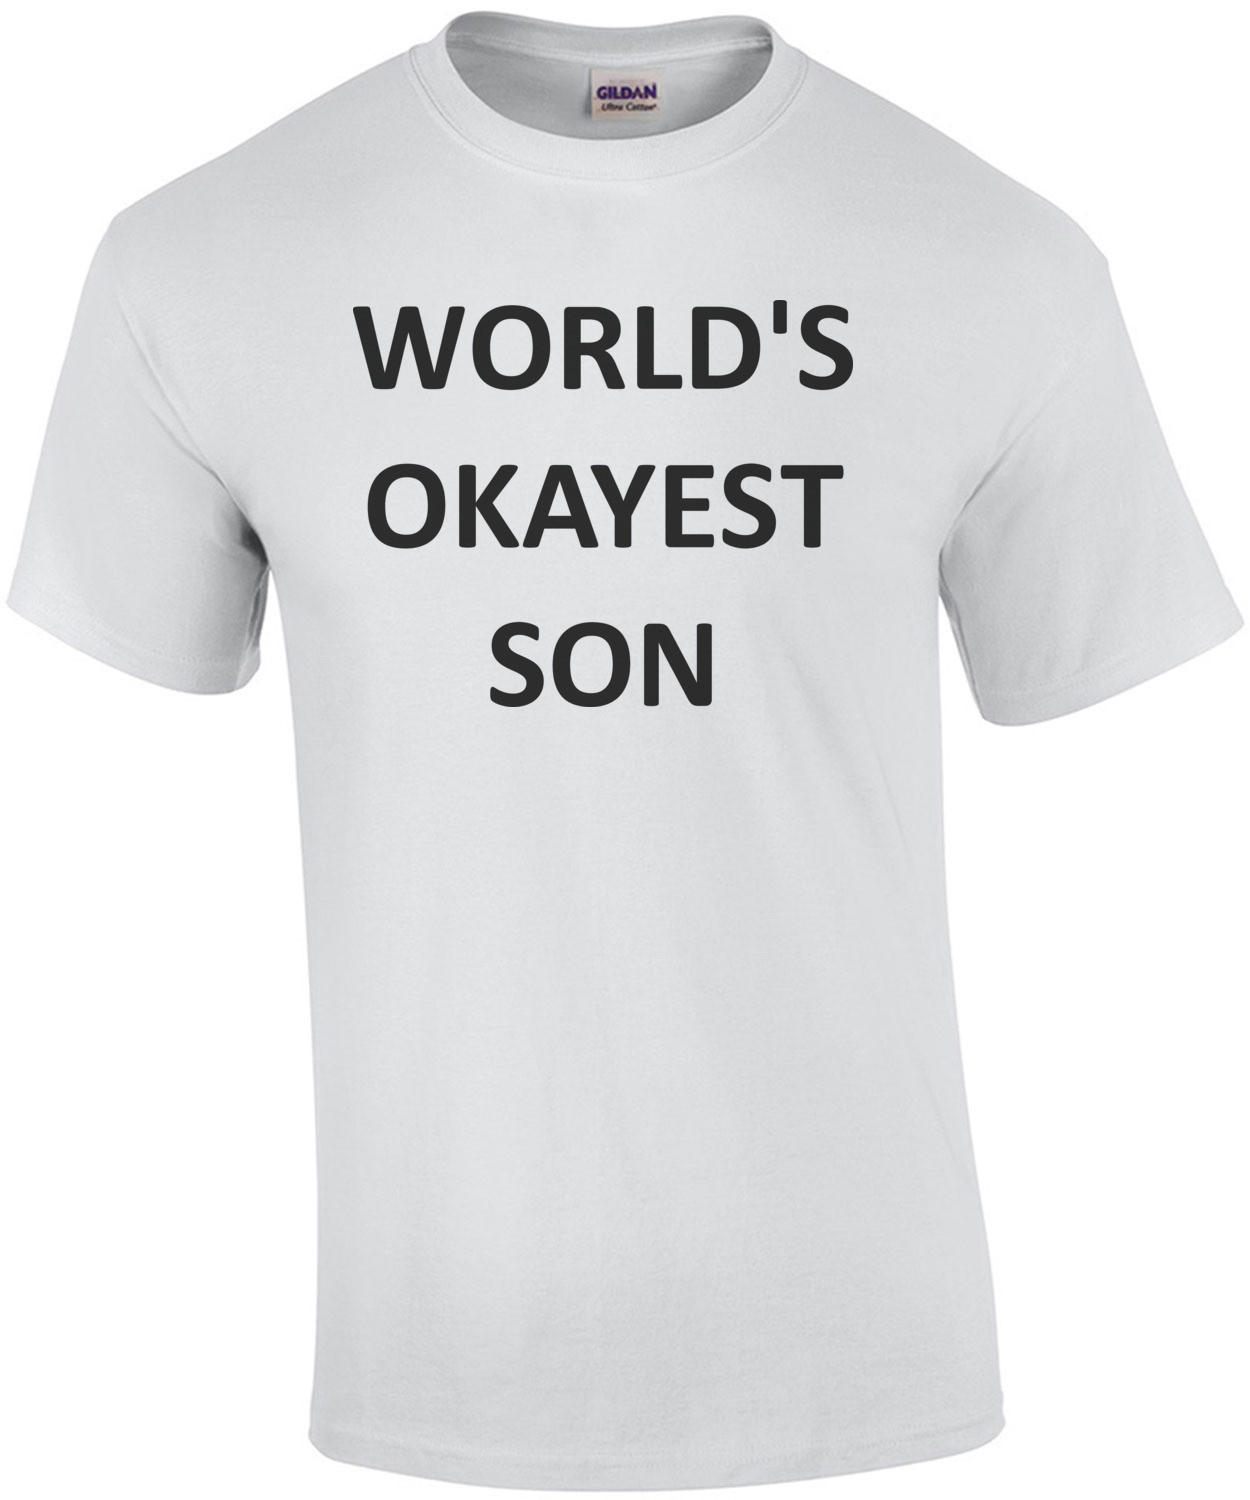 WORLD'S OKAYEST SON Shirt